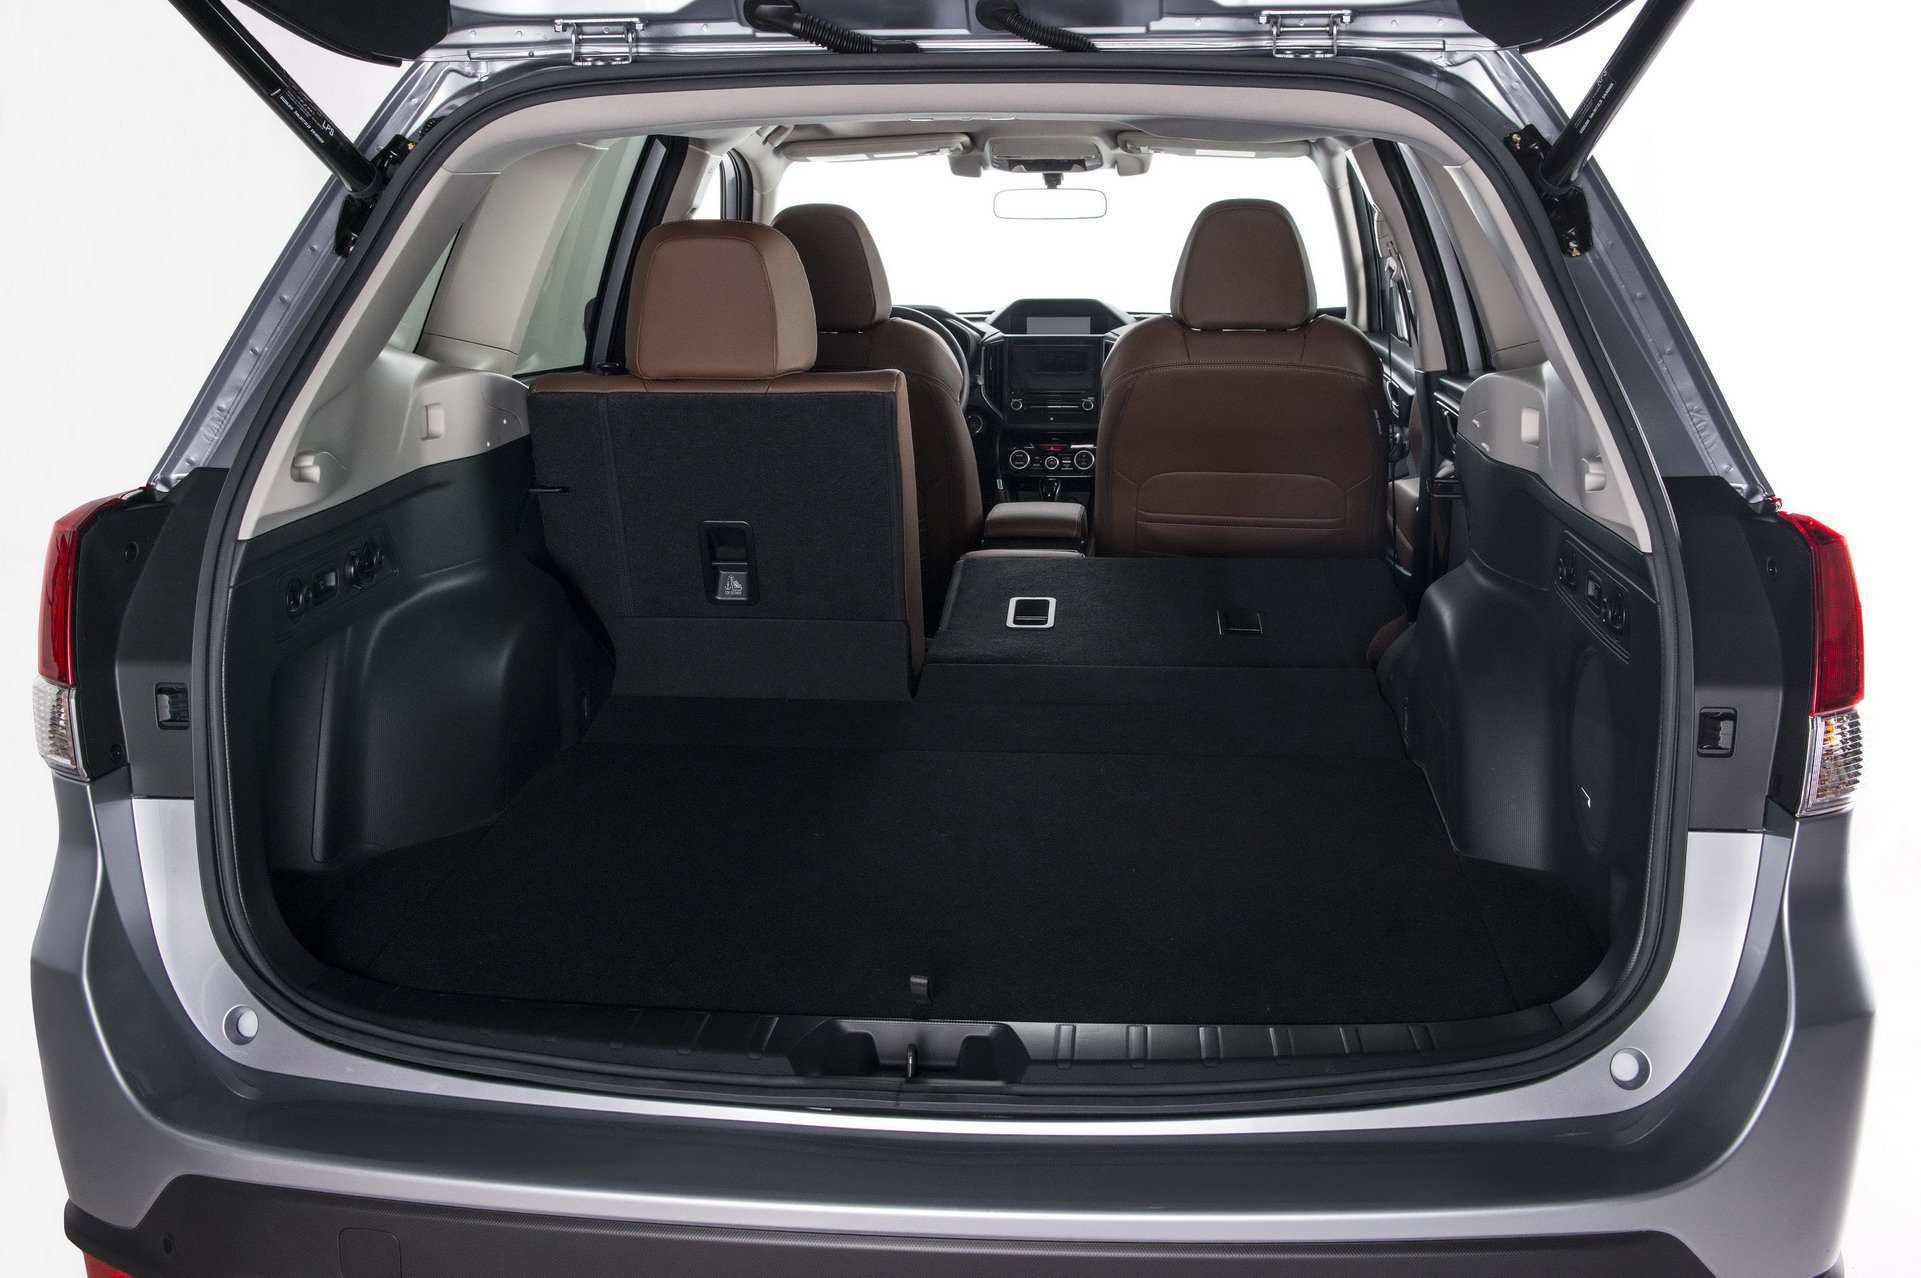 82 New The Subaru 2019 Forester Specs Interior Style by The Subaru 2019 Forester Specs Interior